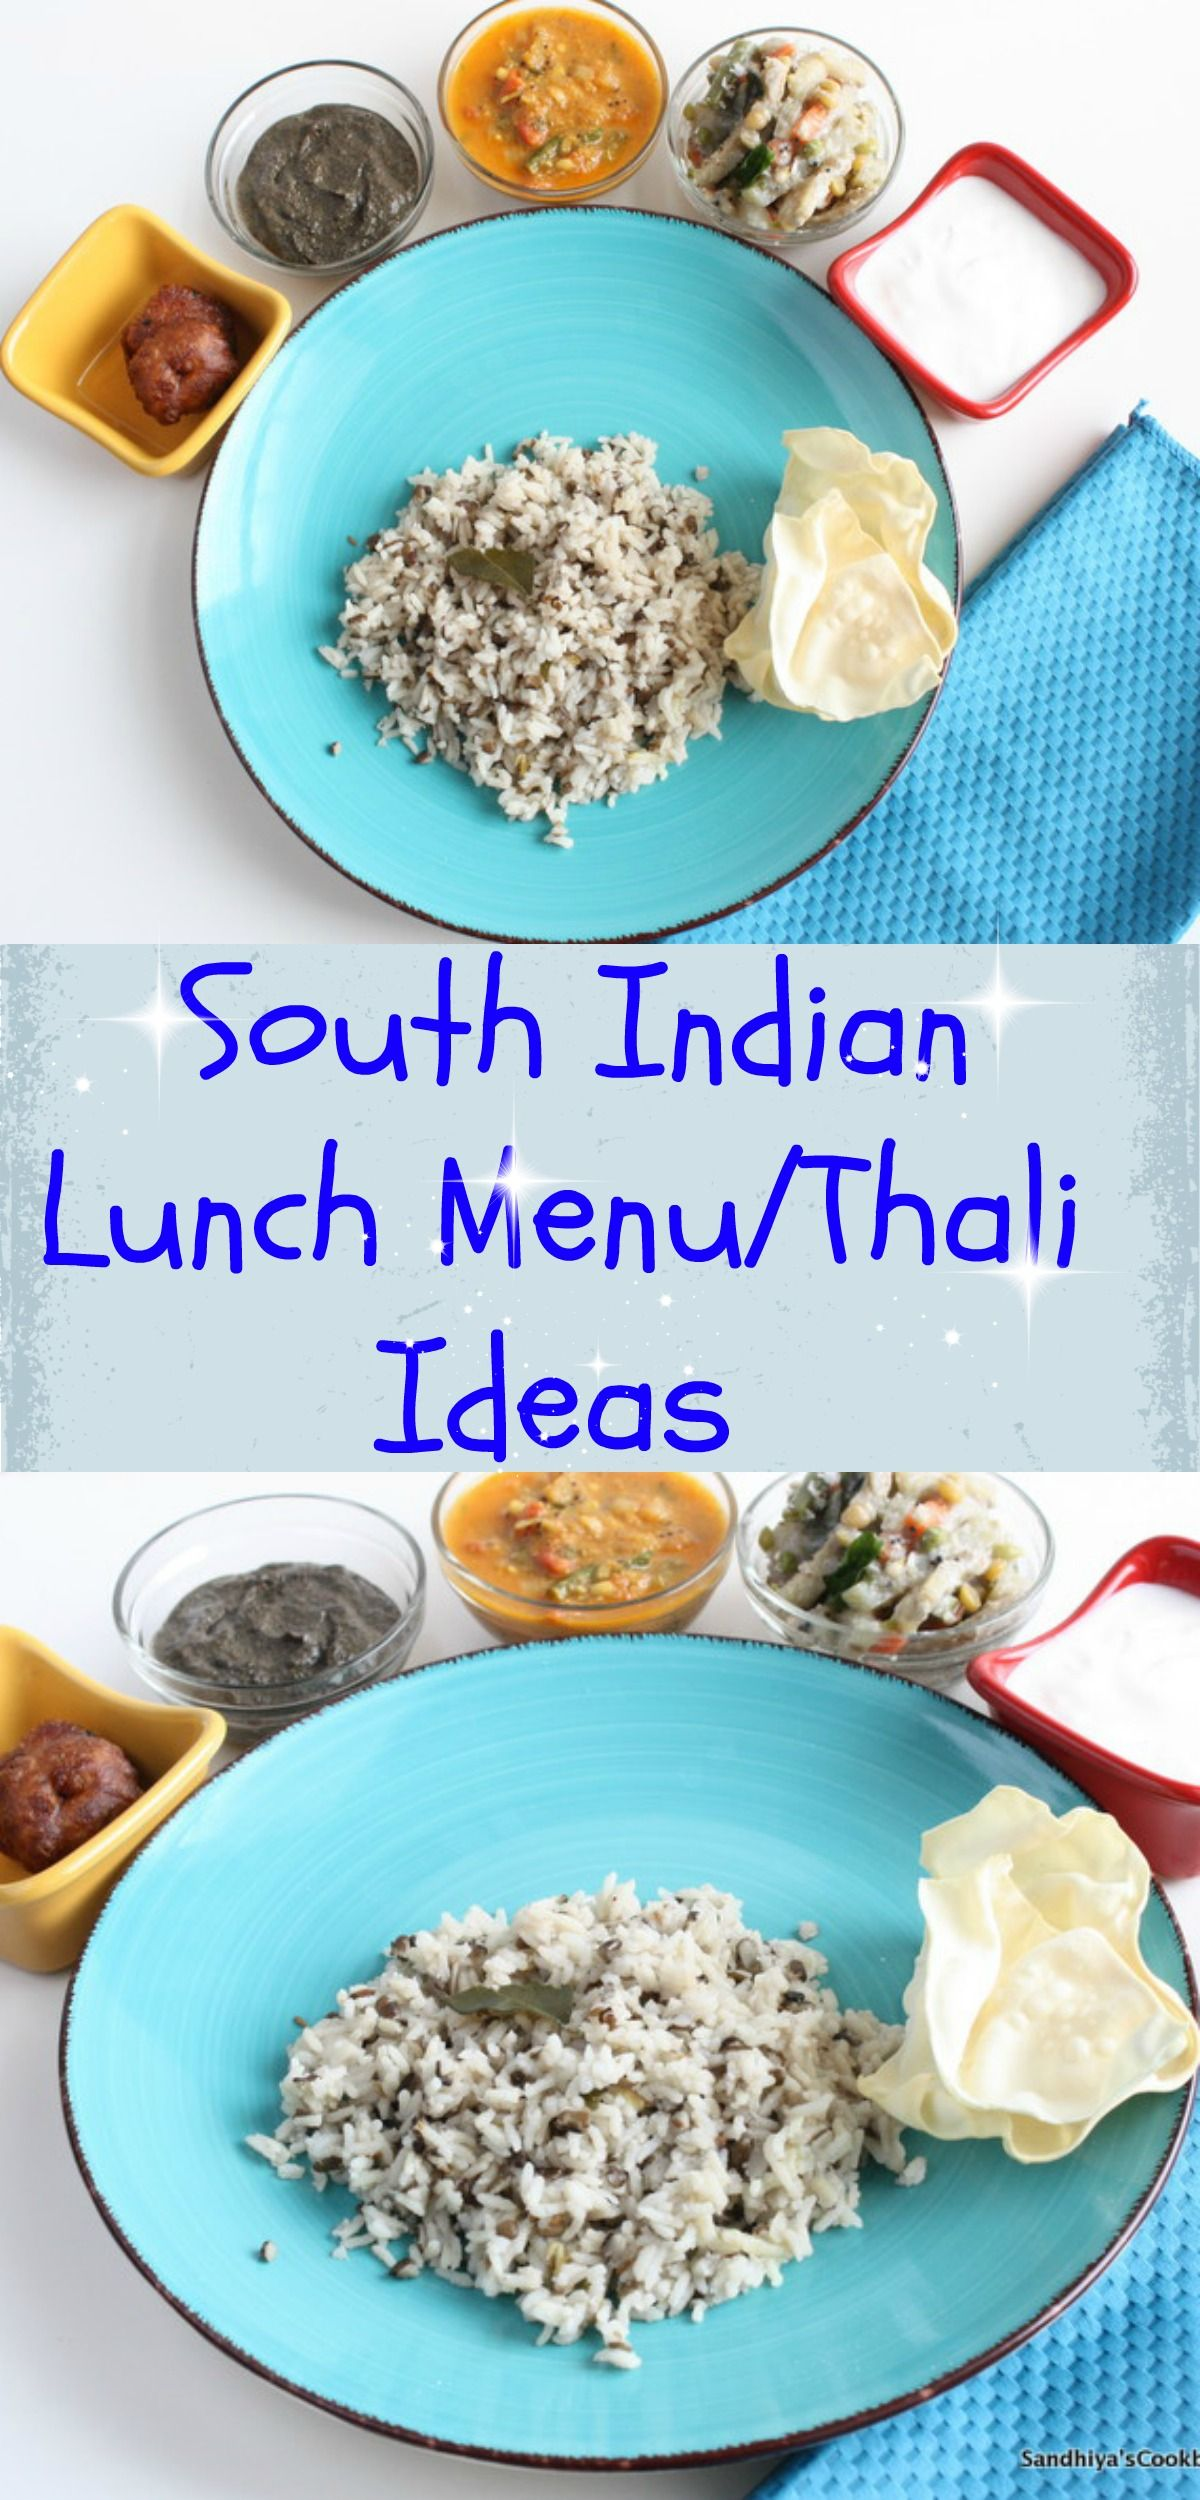 Lunch menu 1 lunch menu menu and lunches lunch menu 1 south indian lunch thali lunch ideas forumfinder Gallery